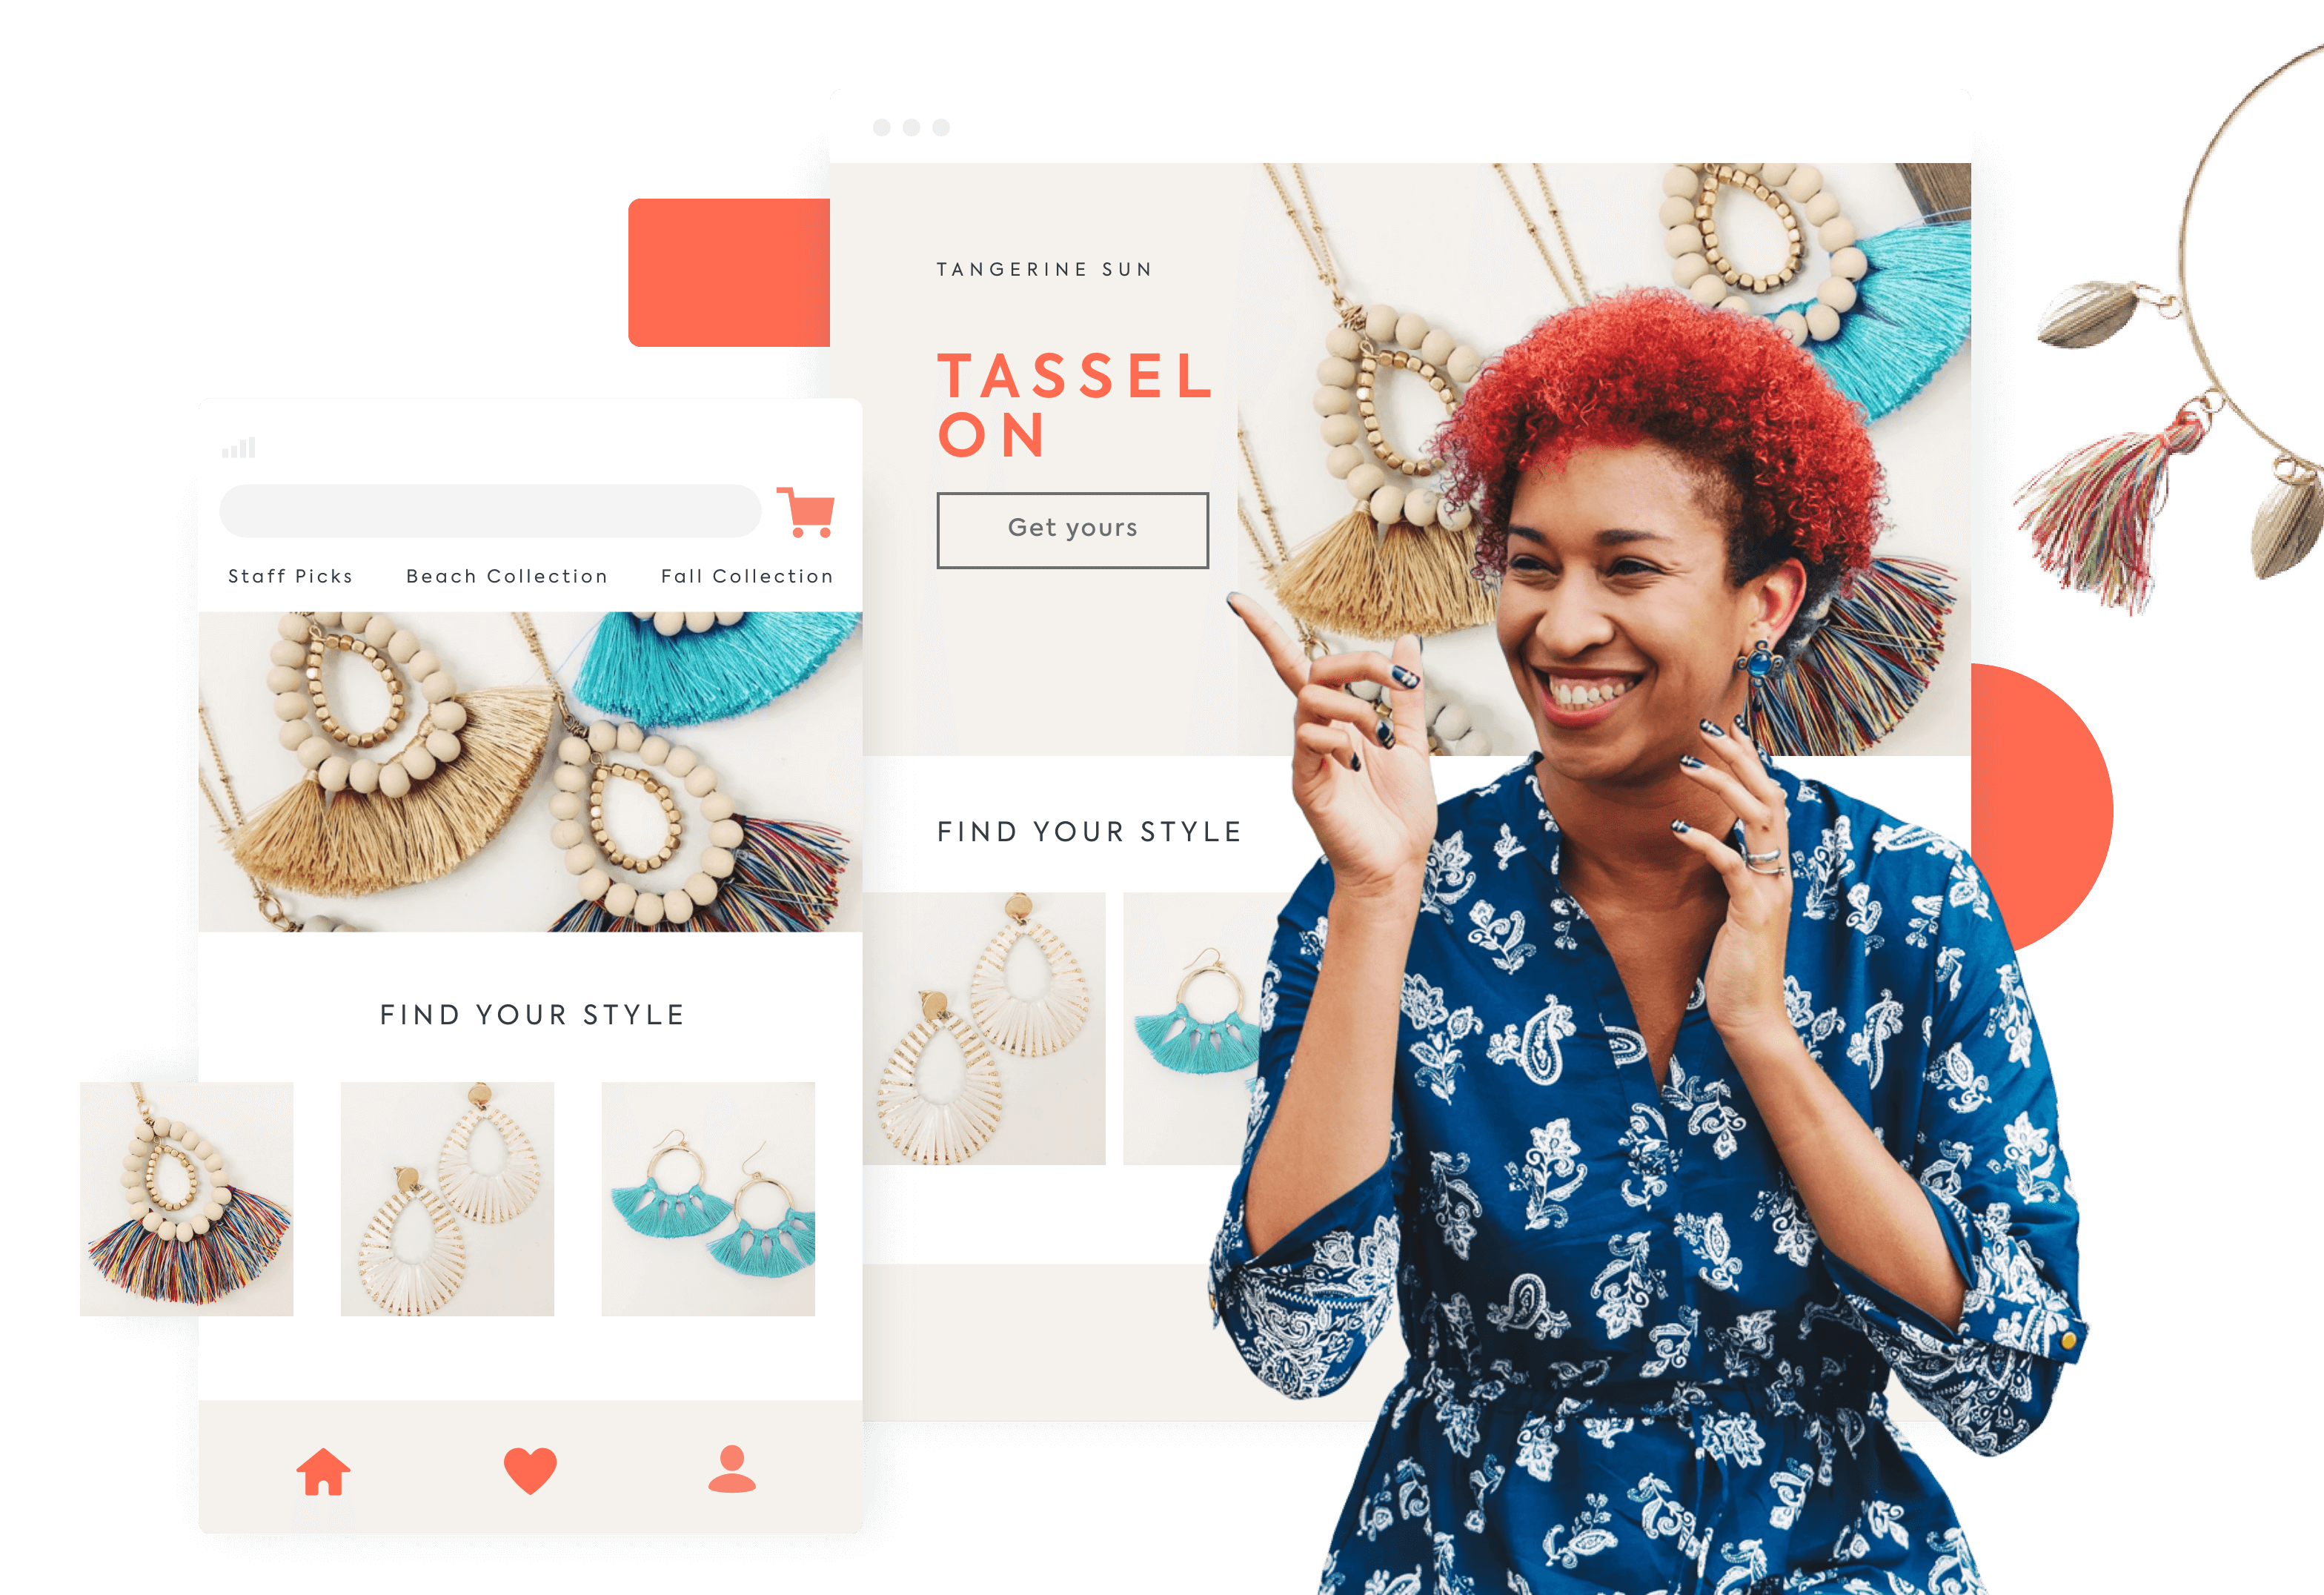 CommentSold gives you an app, e-commerce website, and social commerce tools